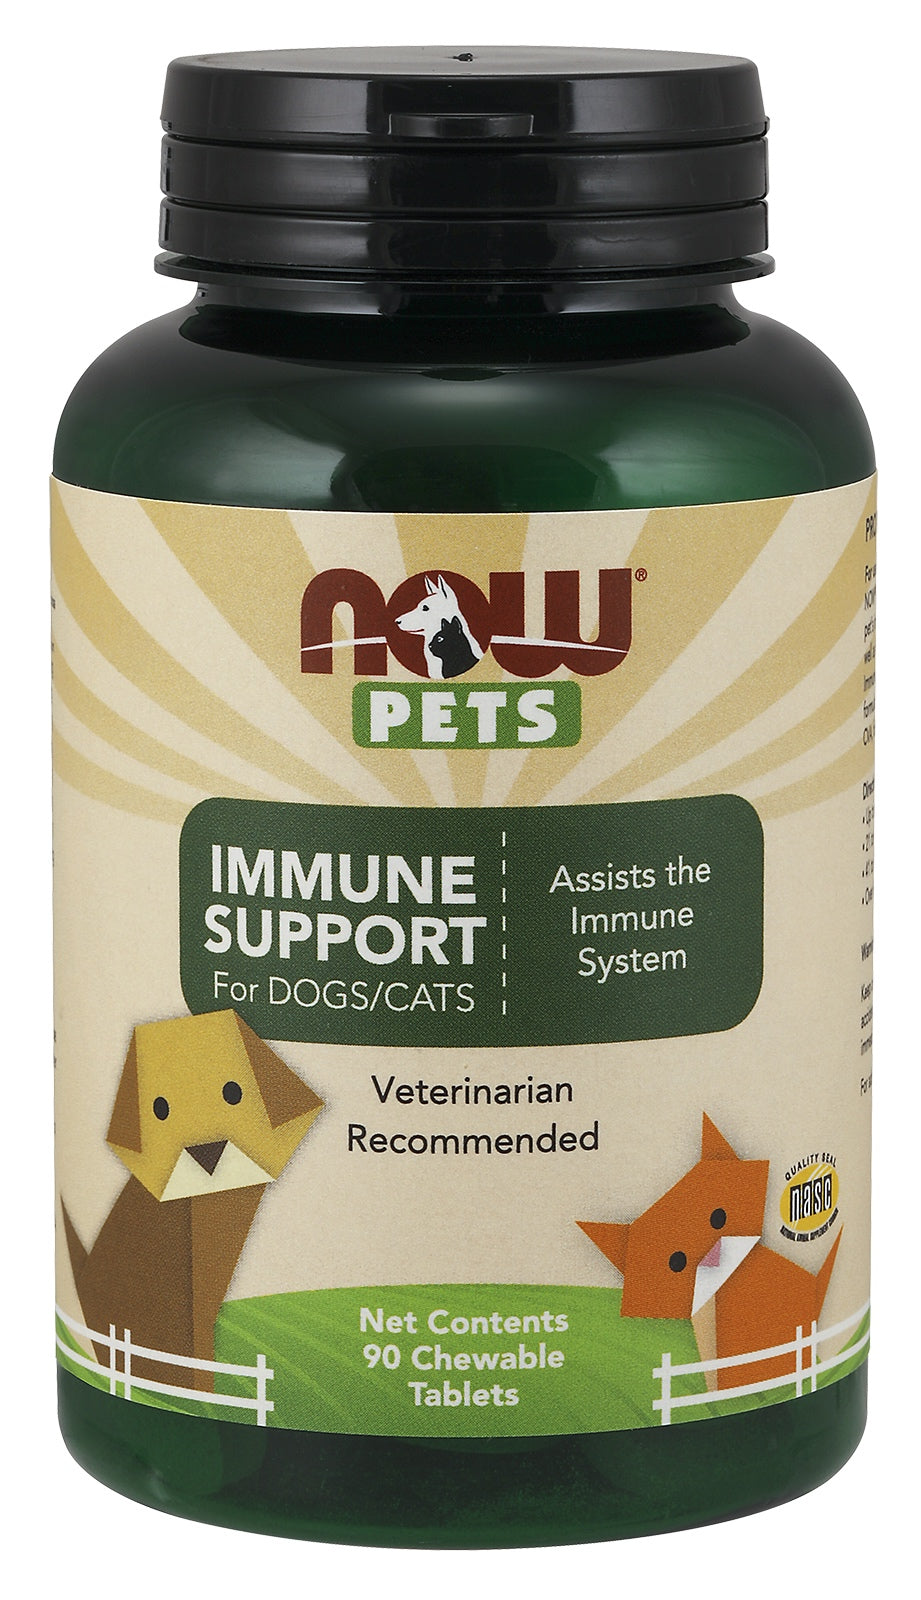 Immune Support Chewables for Dogs & Cats, 90 Chewables